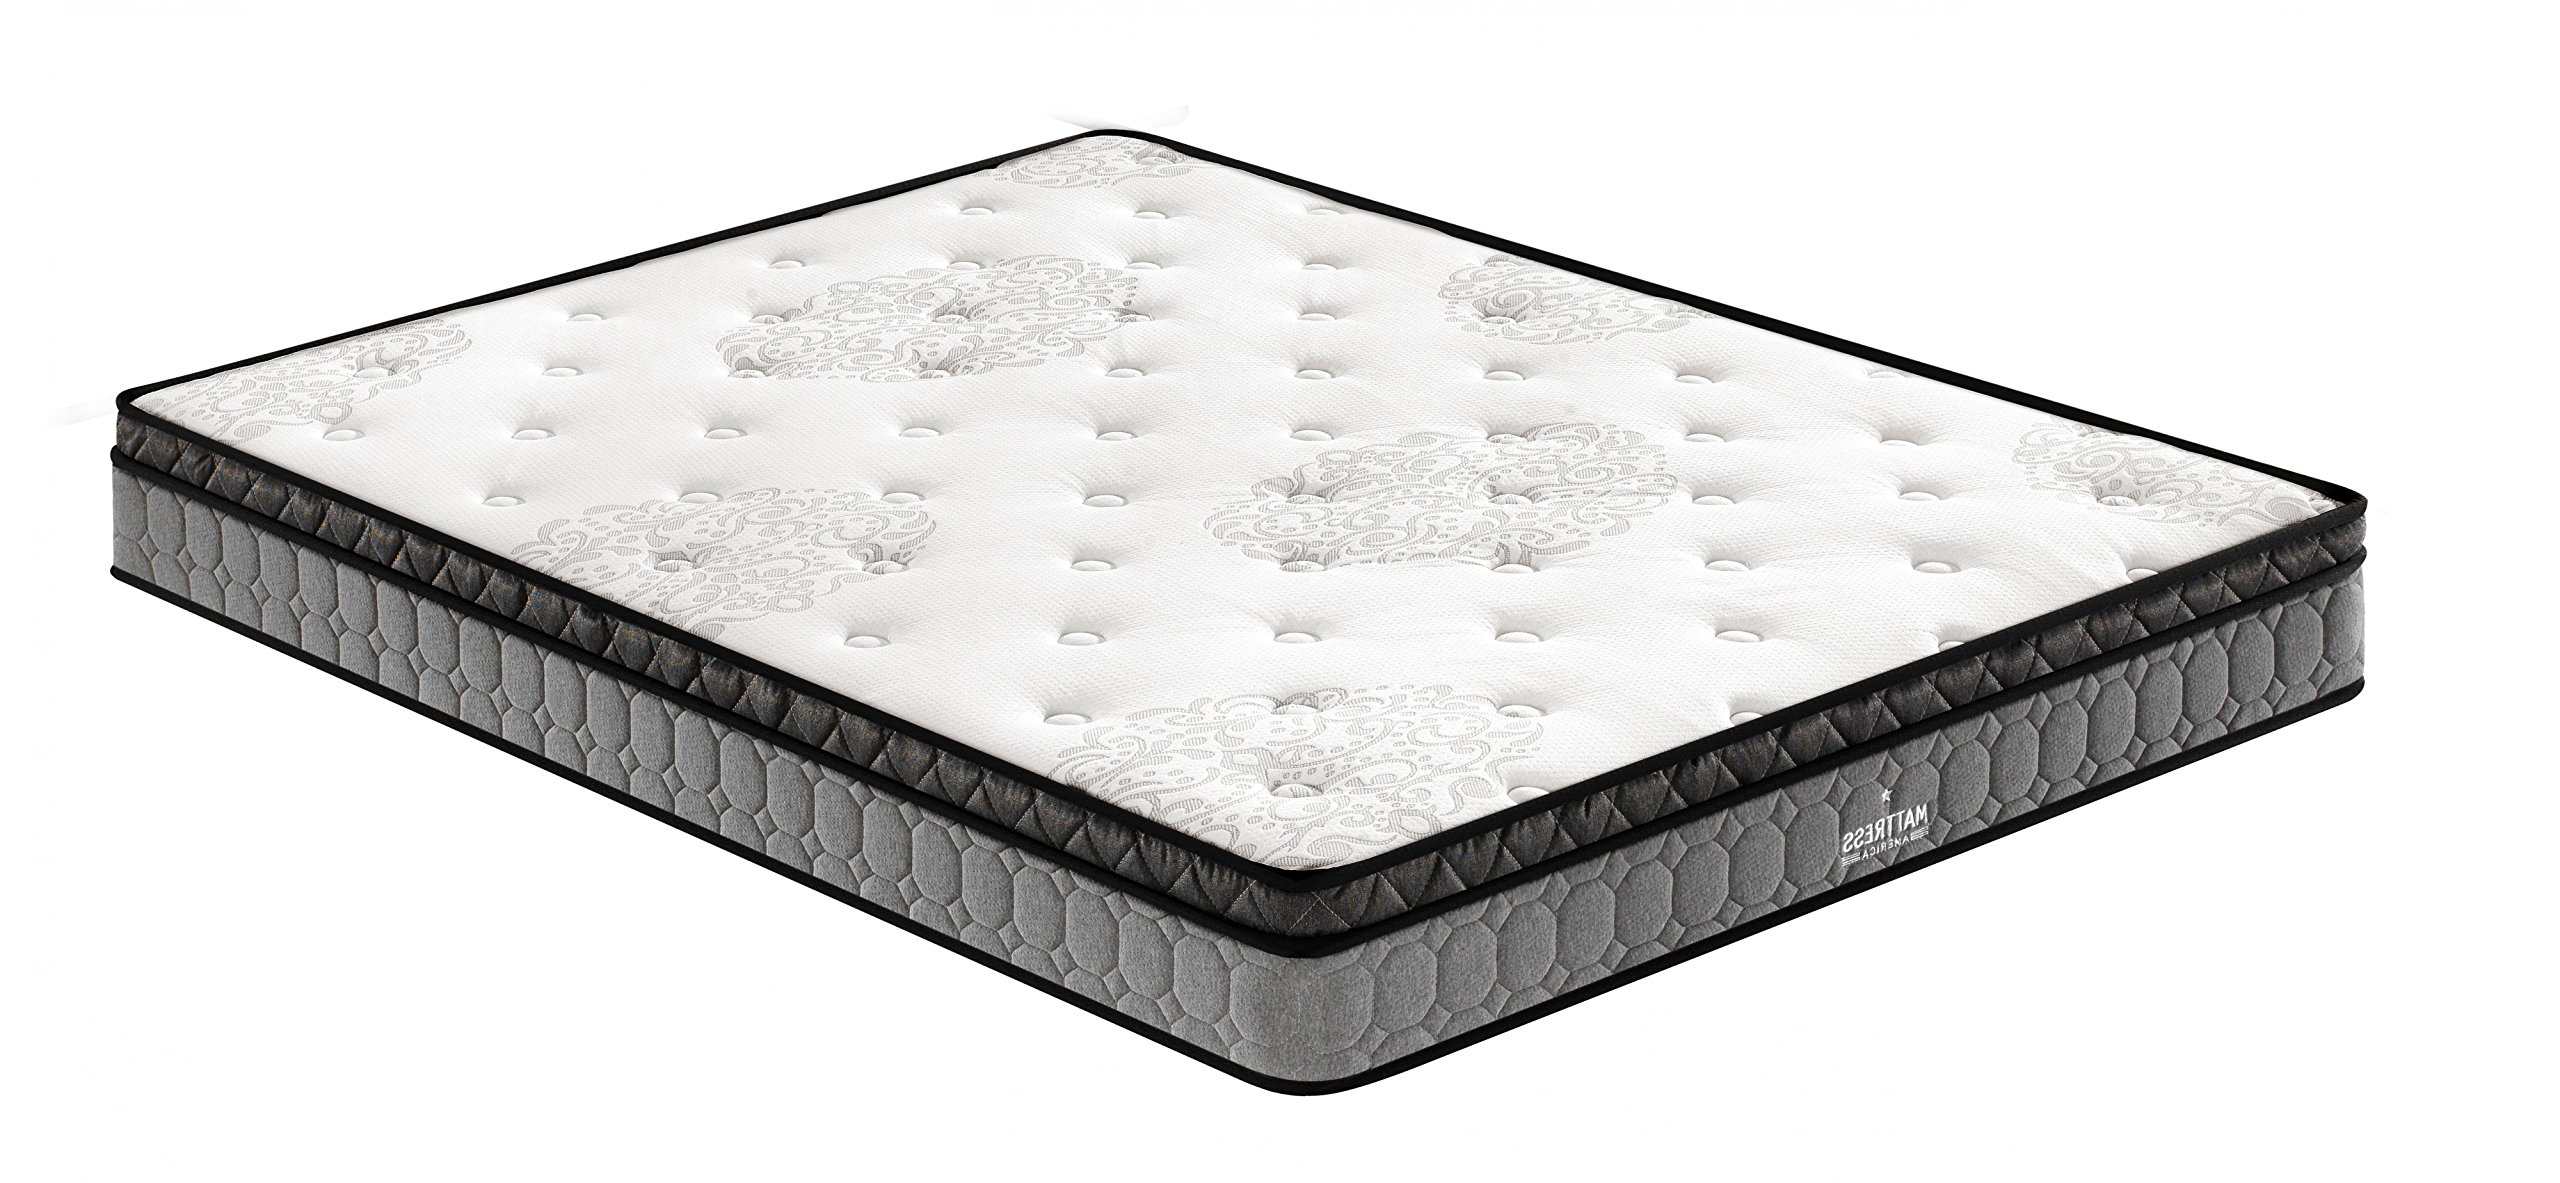 Mattress America 8 Inch Pillow Top Hybrid Mattress, Queen by Mattress America